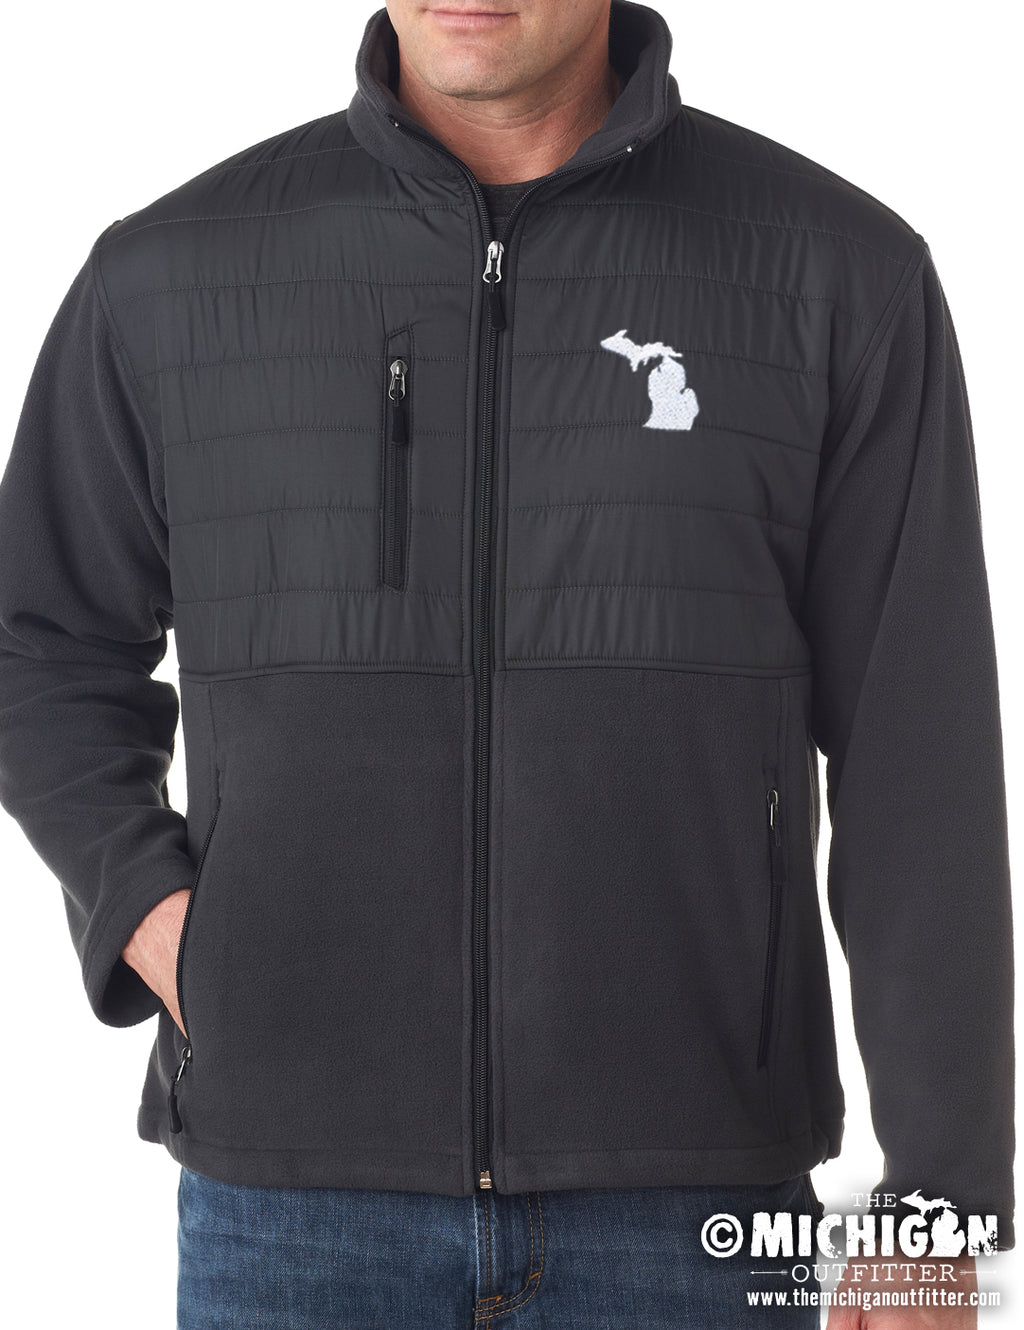 Men's Fleece Jacket - Charcoal